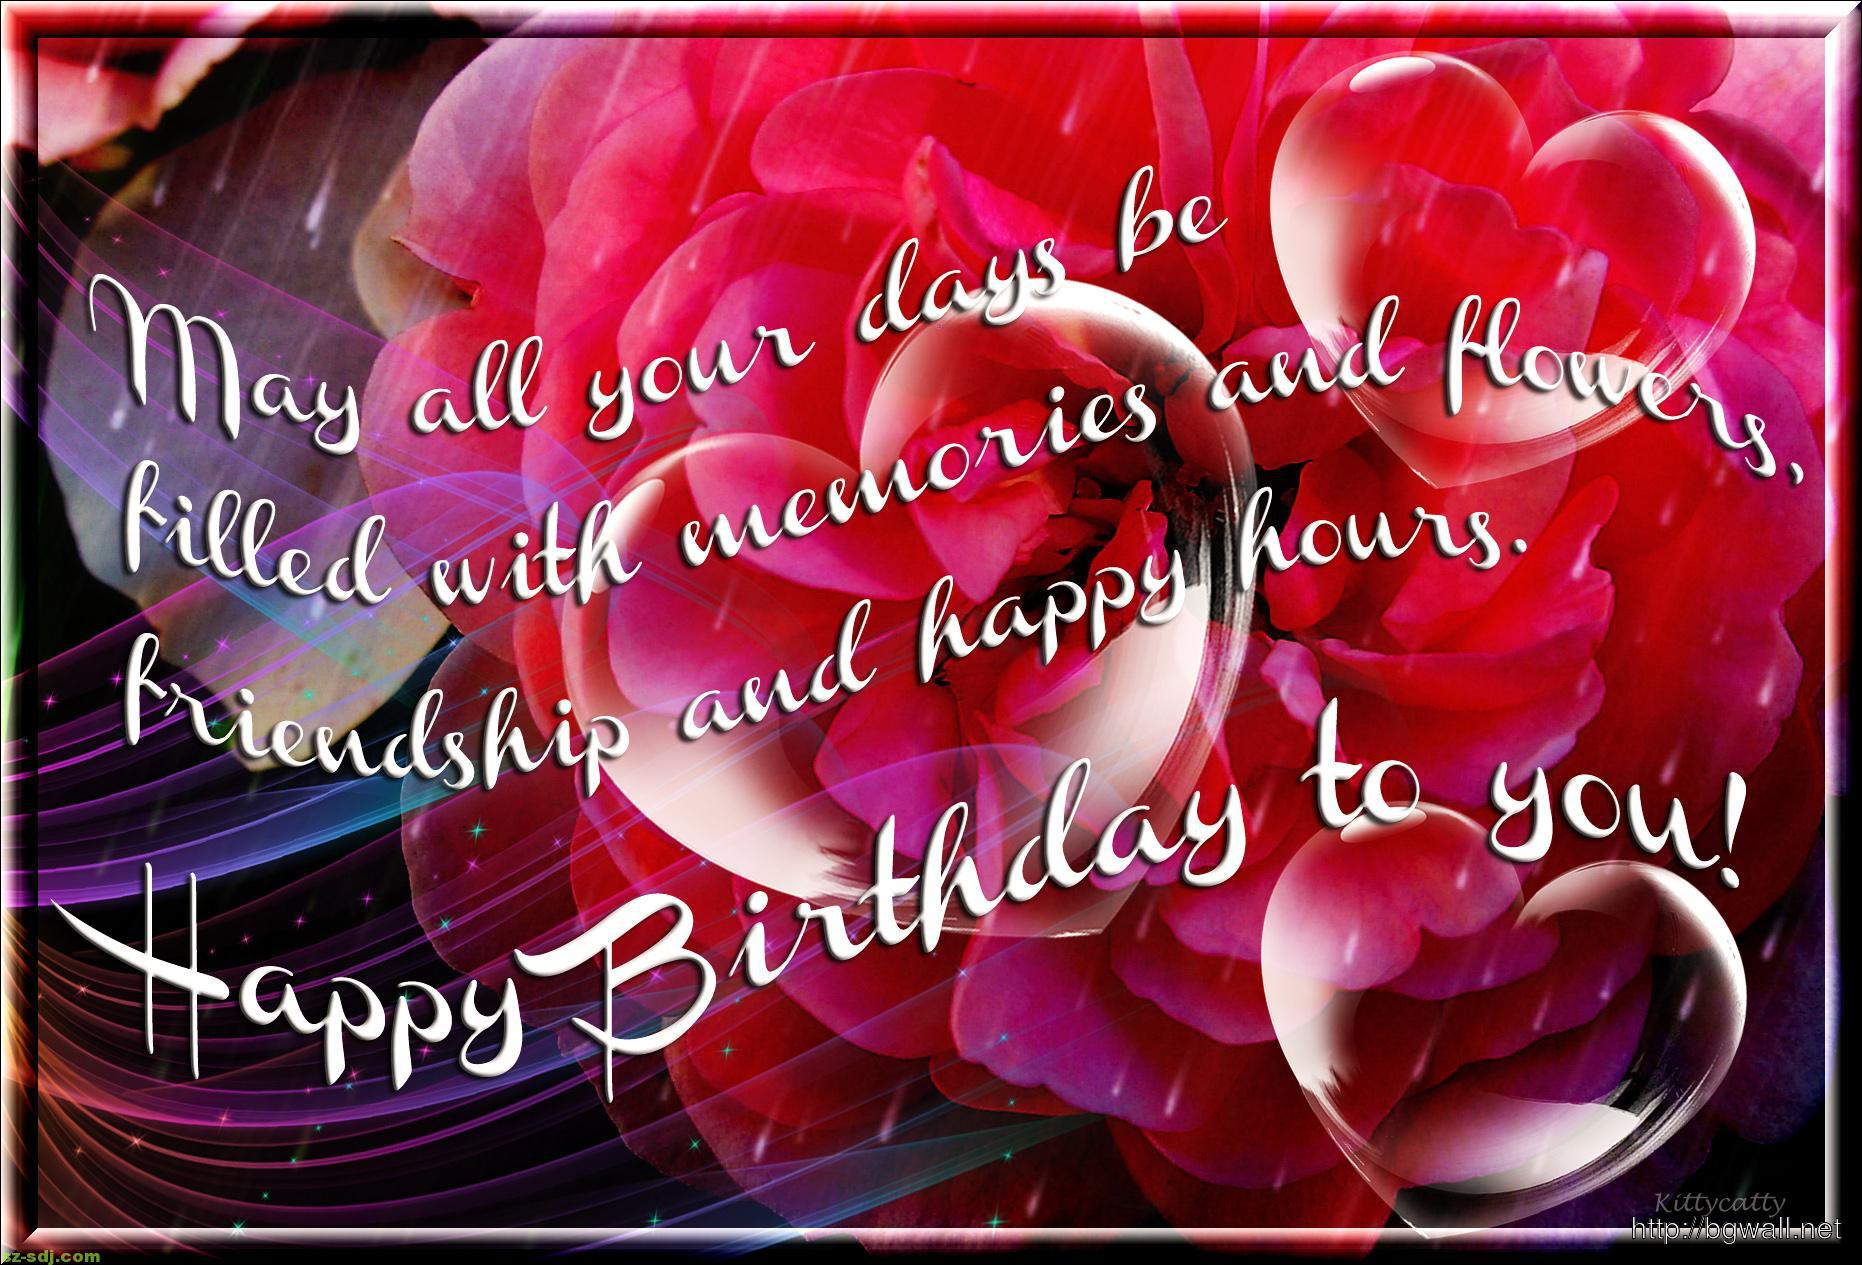 free happy birthday wallpaper for android ; e5046a5399c7f59424bf75bb20e6acb0